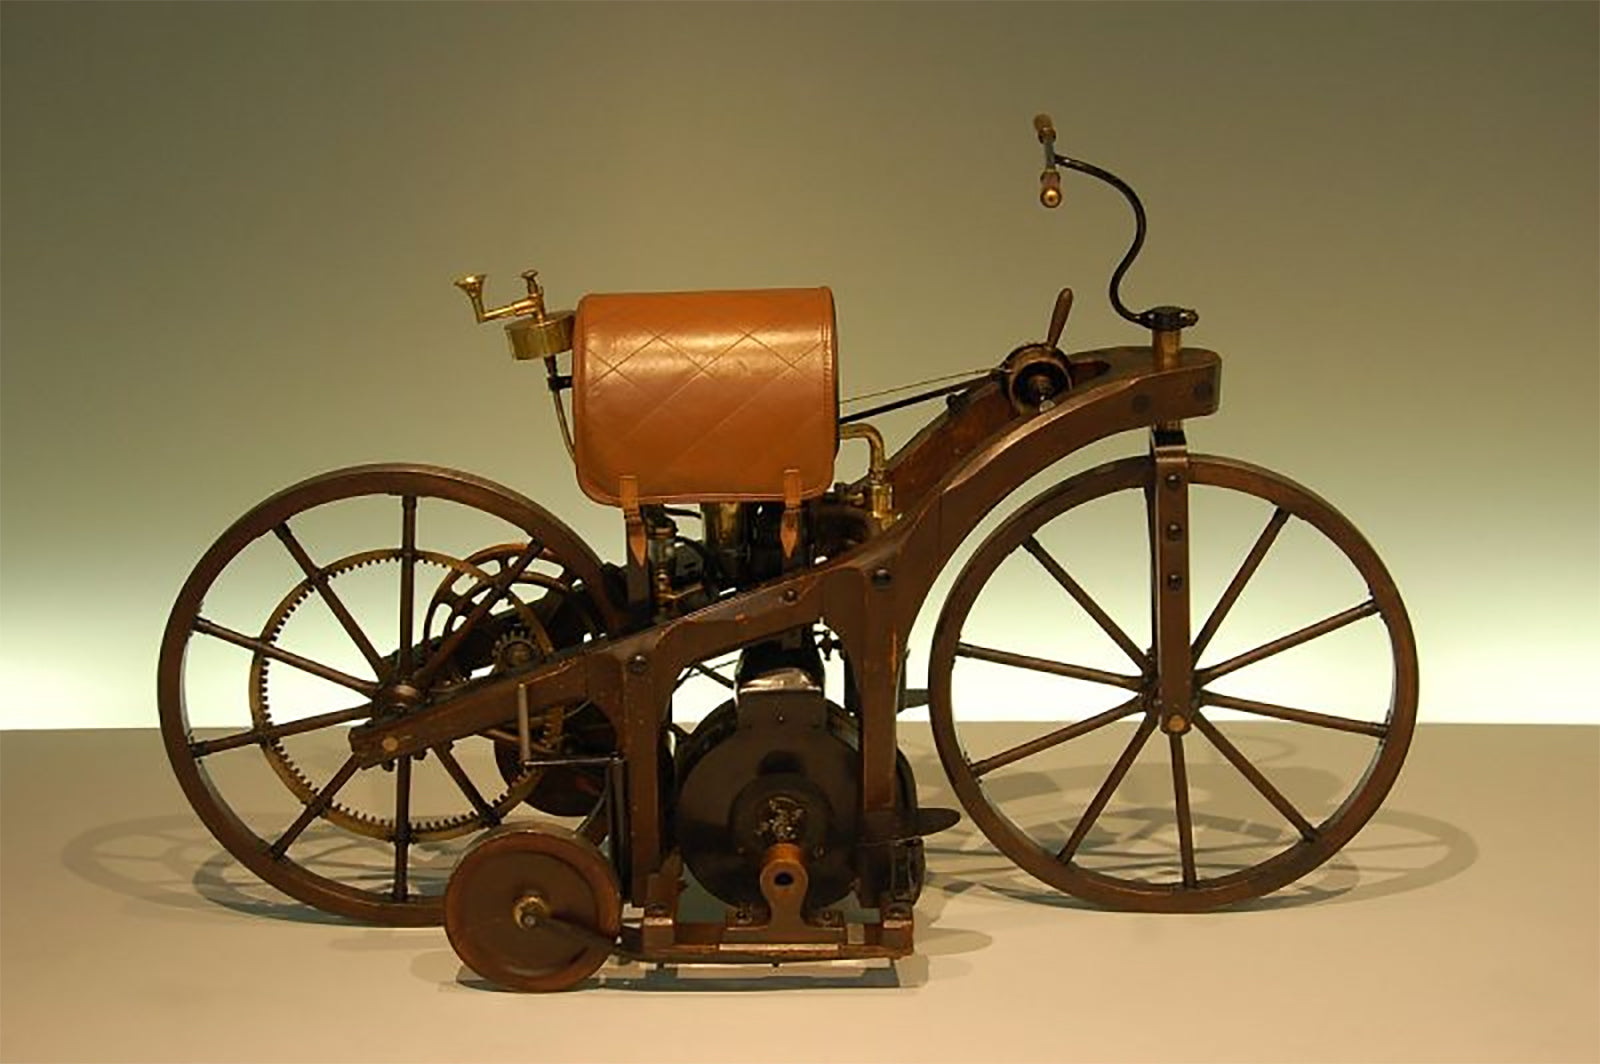 The Replica of first combustion engine motorcycle